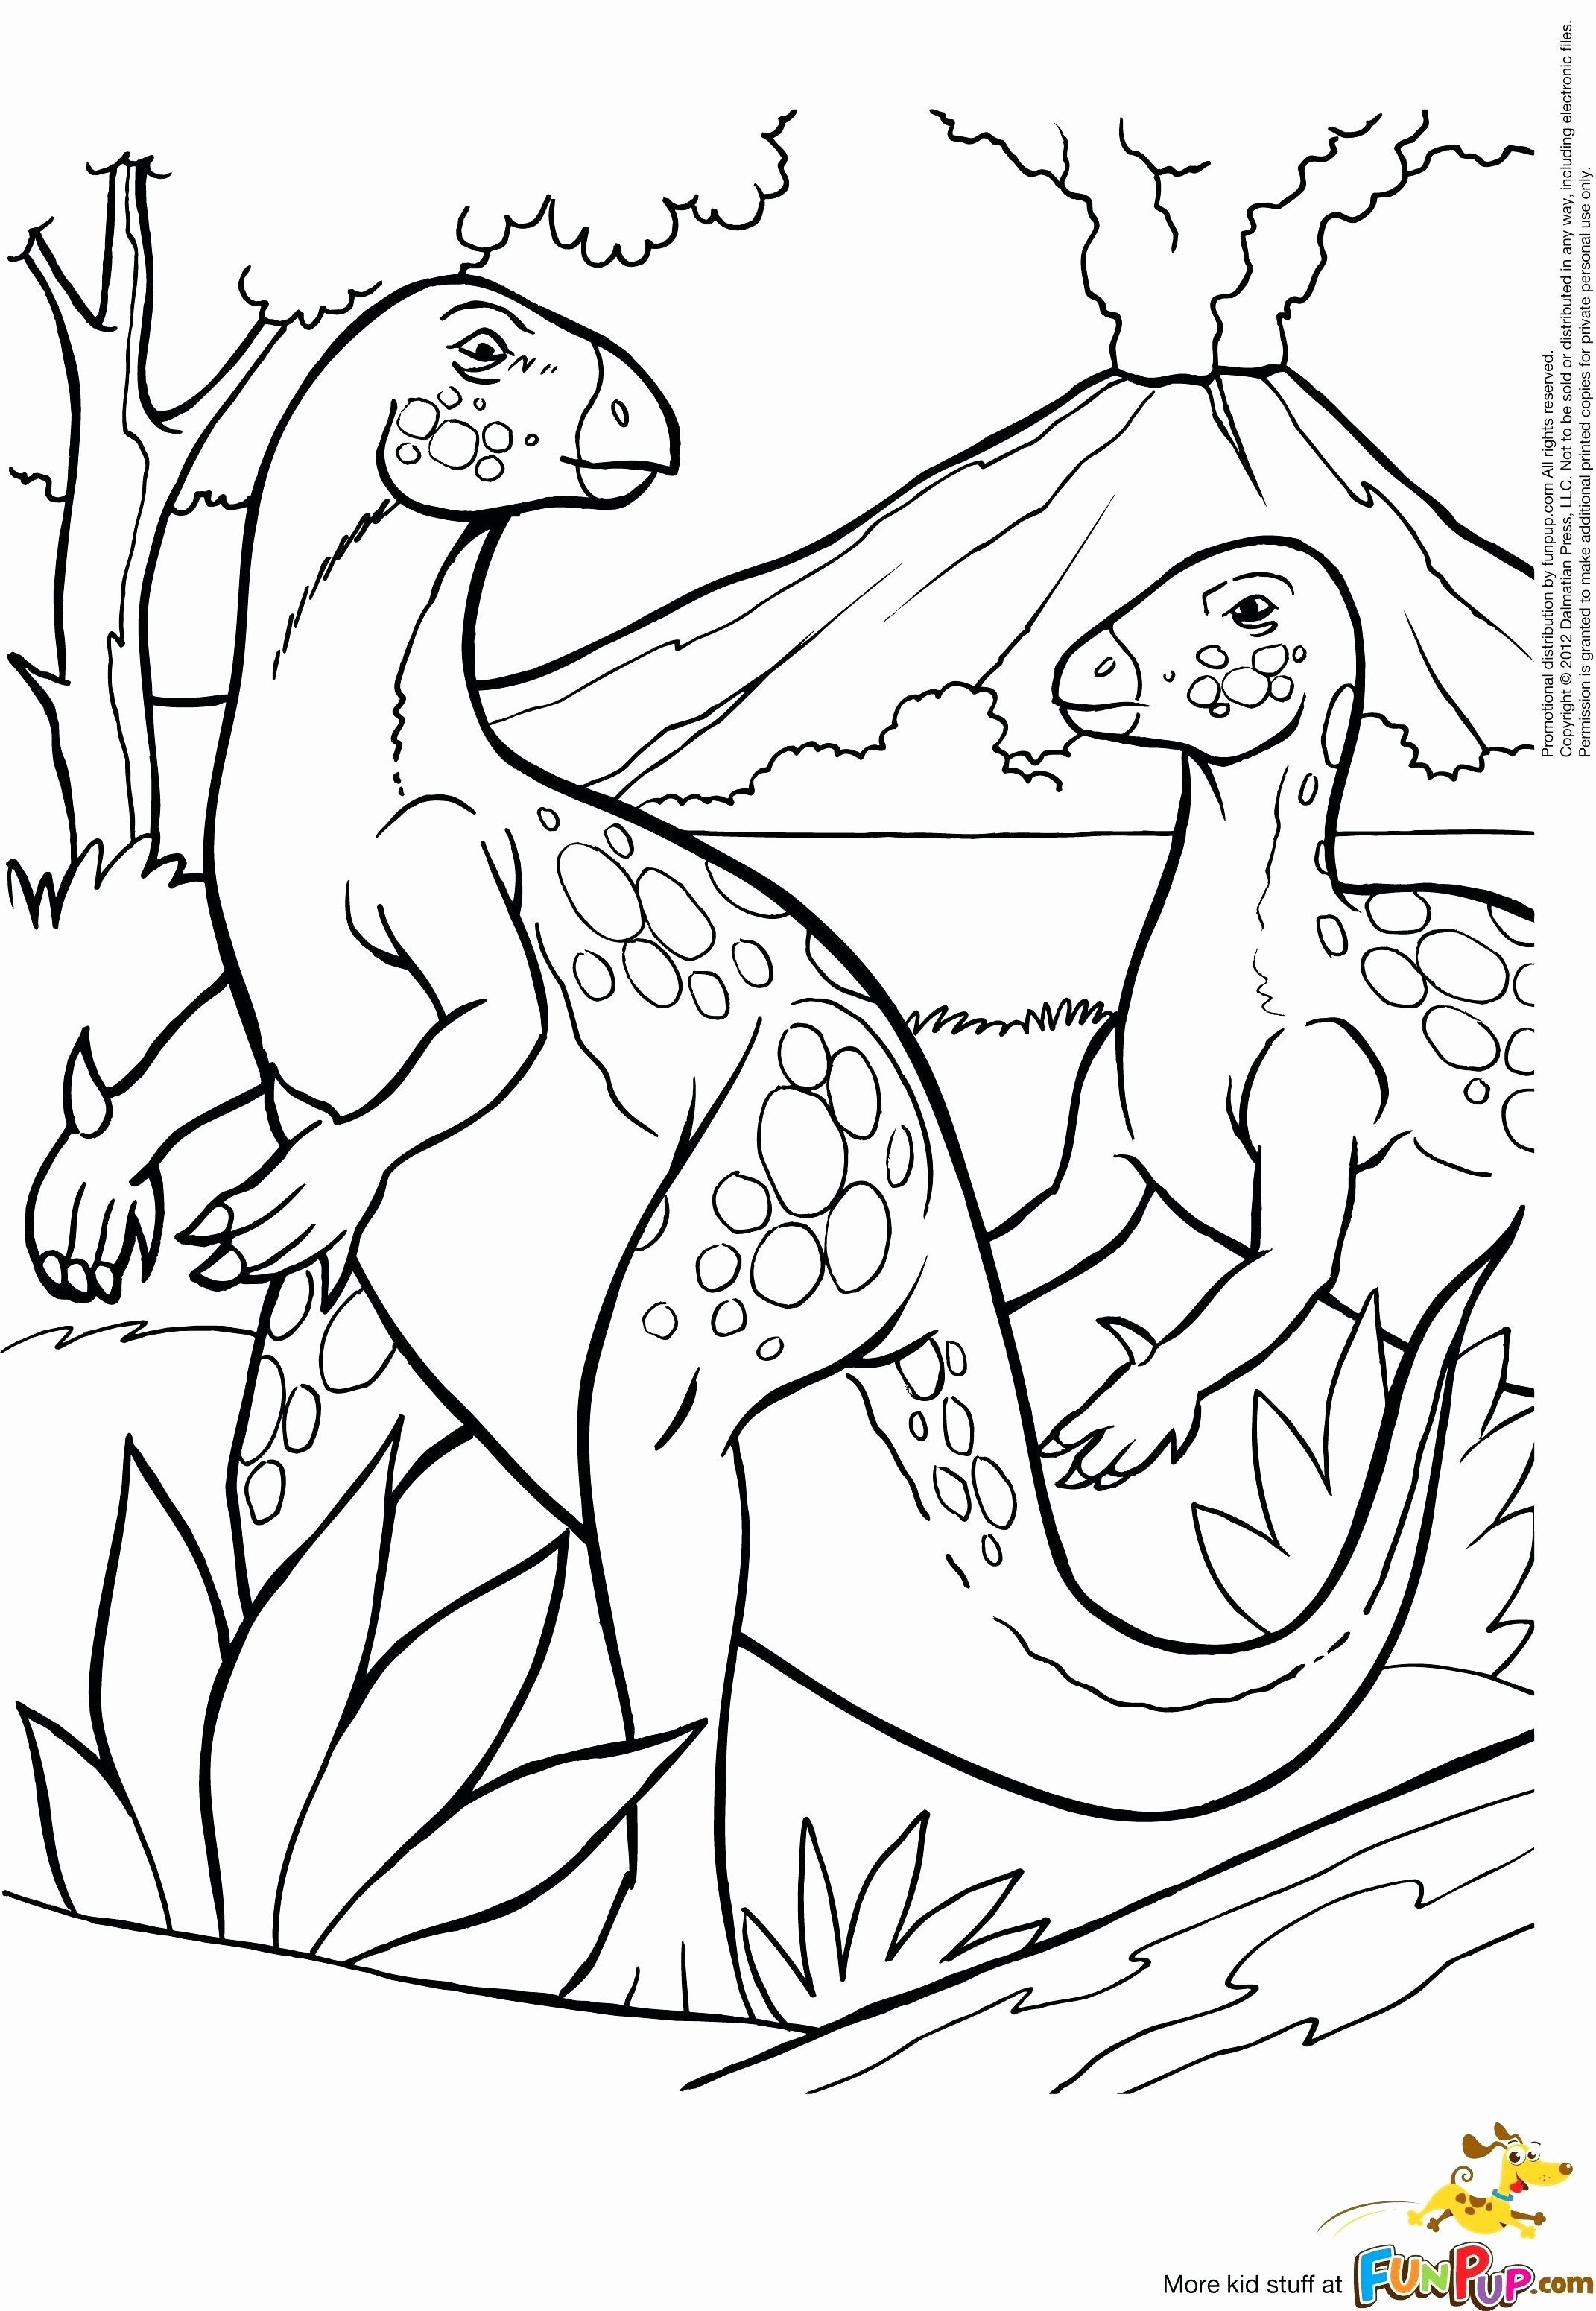 Volcano Coloring Pages To Print Unique Coloring Pages Nature Scenes Goodwincolor Dinosaur Coloring Pages Coloring Pages Nature Coloring Pages